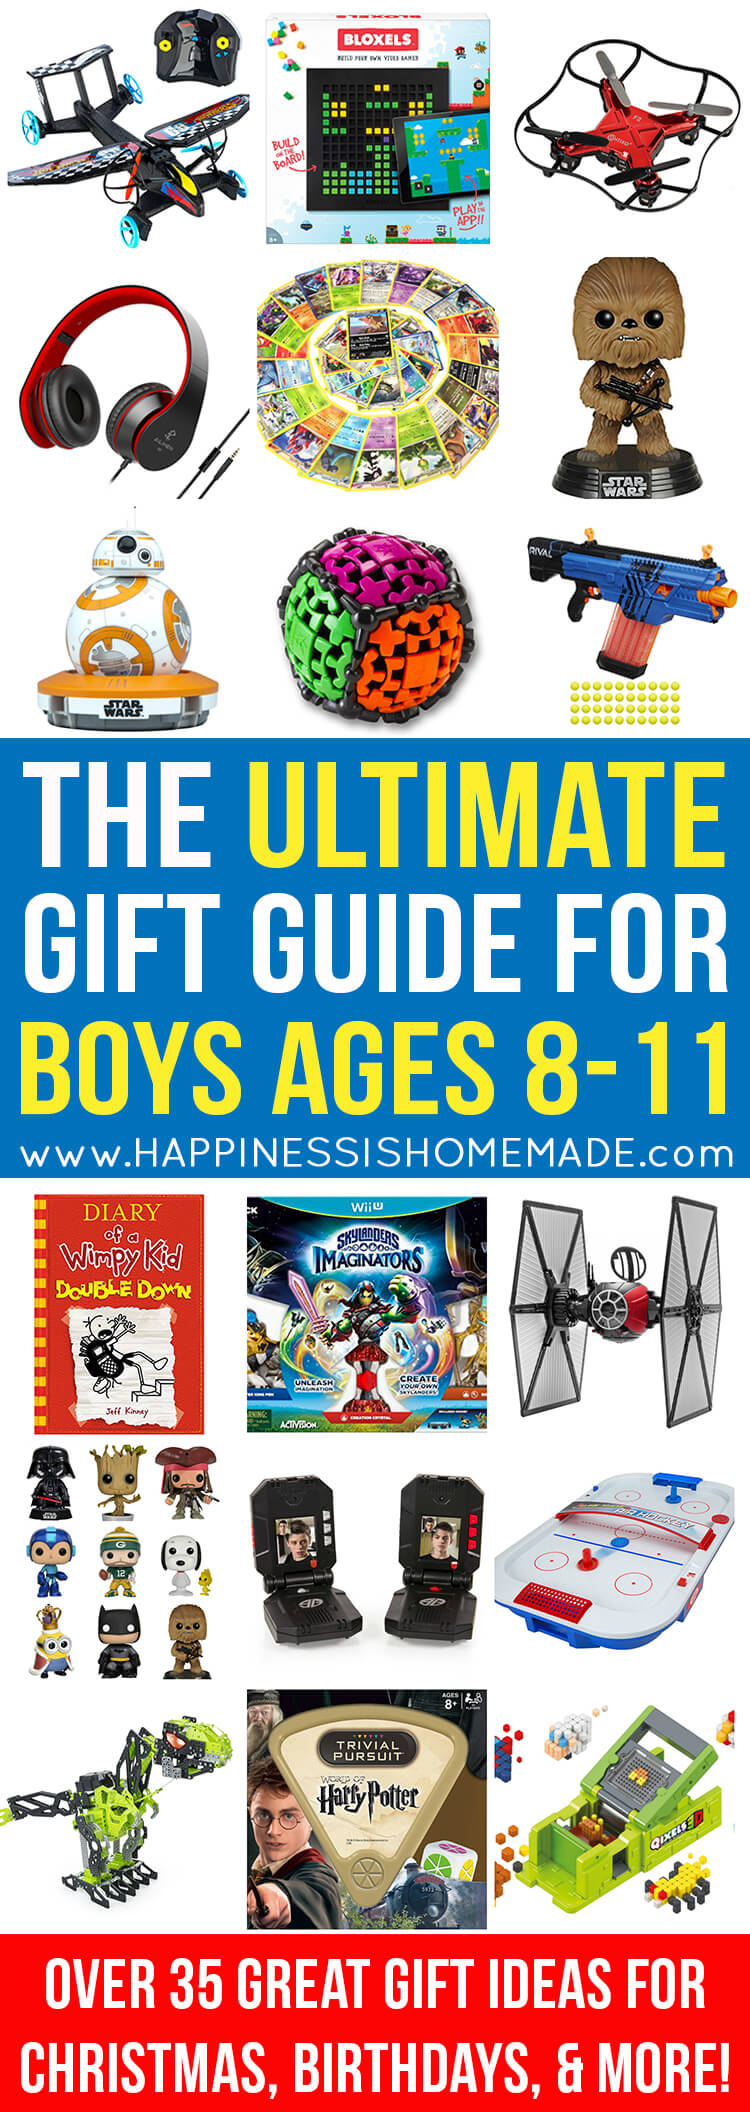 Good christmas gifts for 11 year old boys